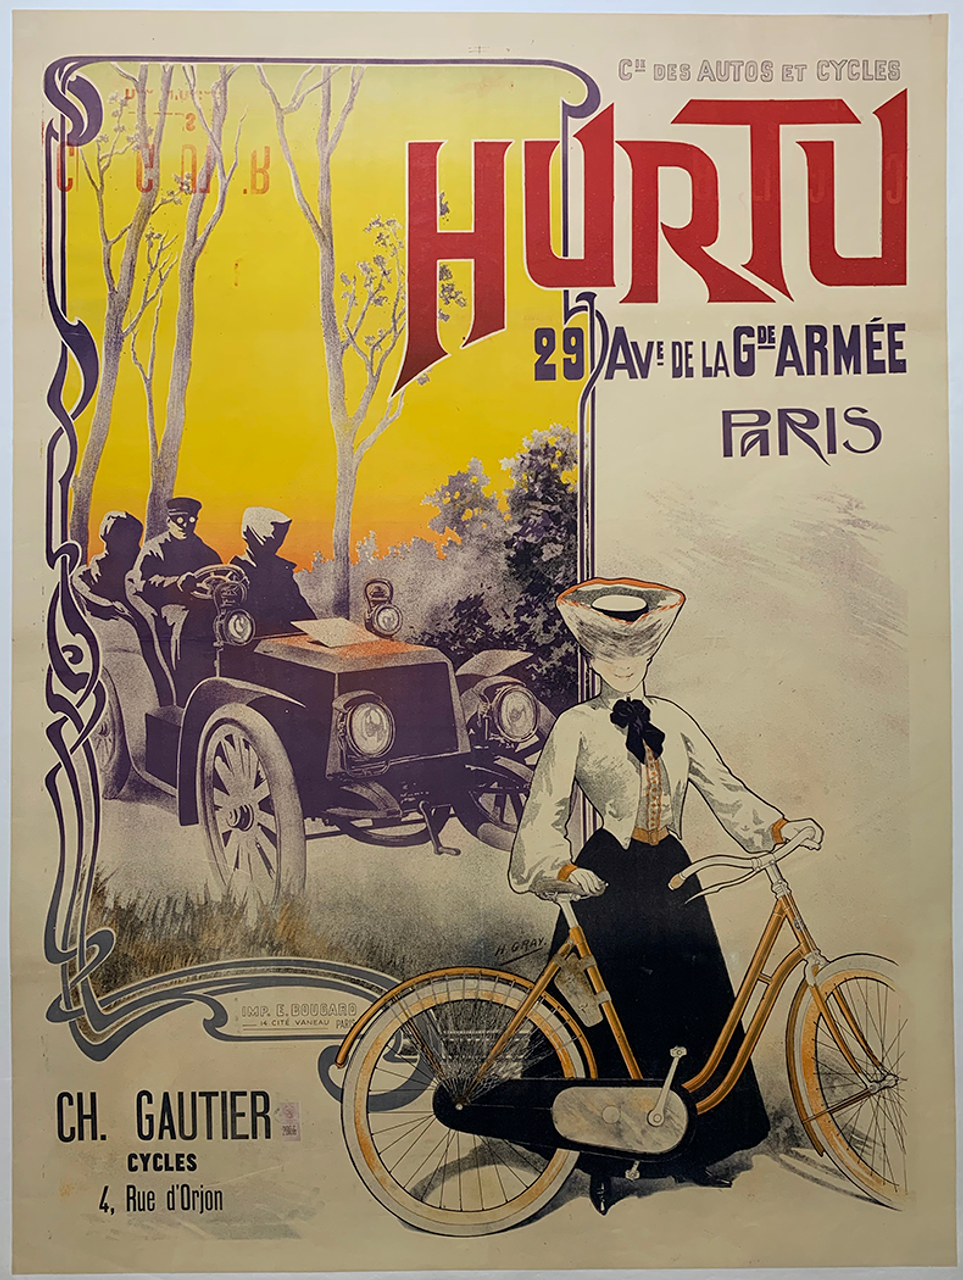 Hurtu Original Vintage Bicycle Poster by H Gray